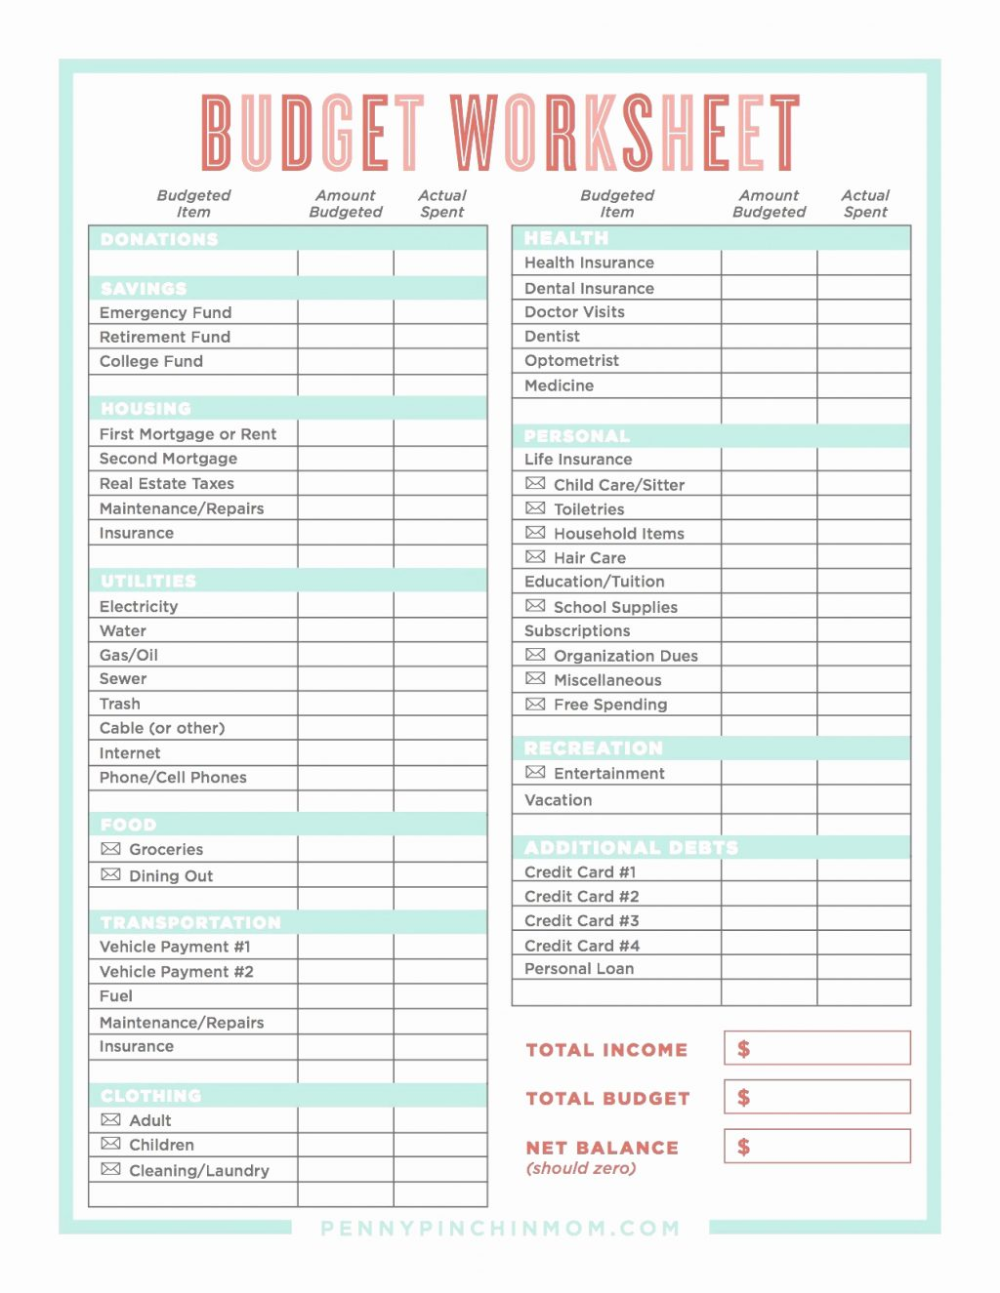 Spreadsheet Free Budget Dave Ramsey Sheet Template And Debt Money Worksheets Spreadsheets Online Cel Excel Forms S Money Worksheets Budgeting Budget Planning